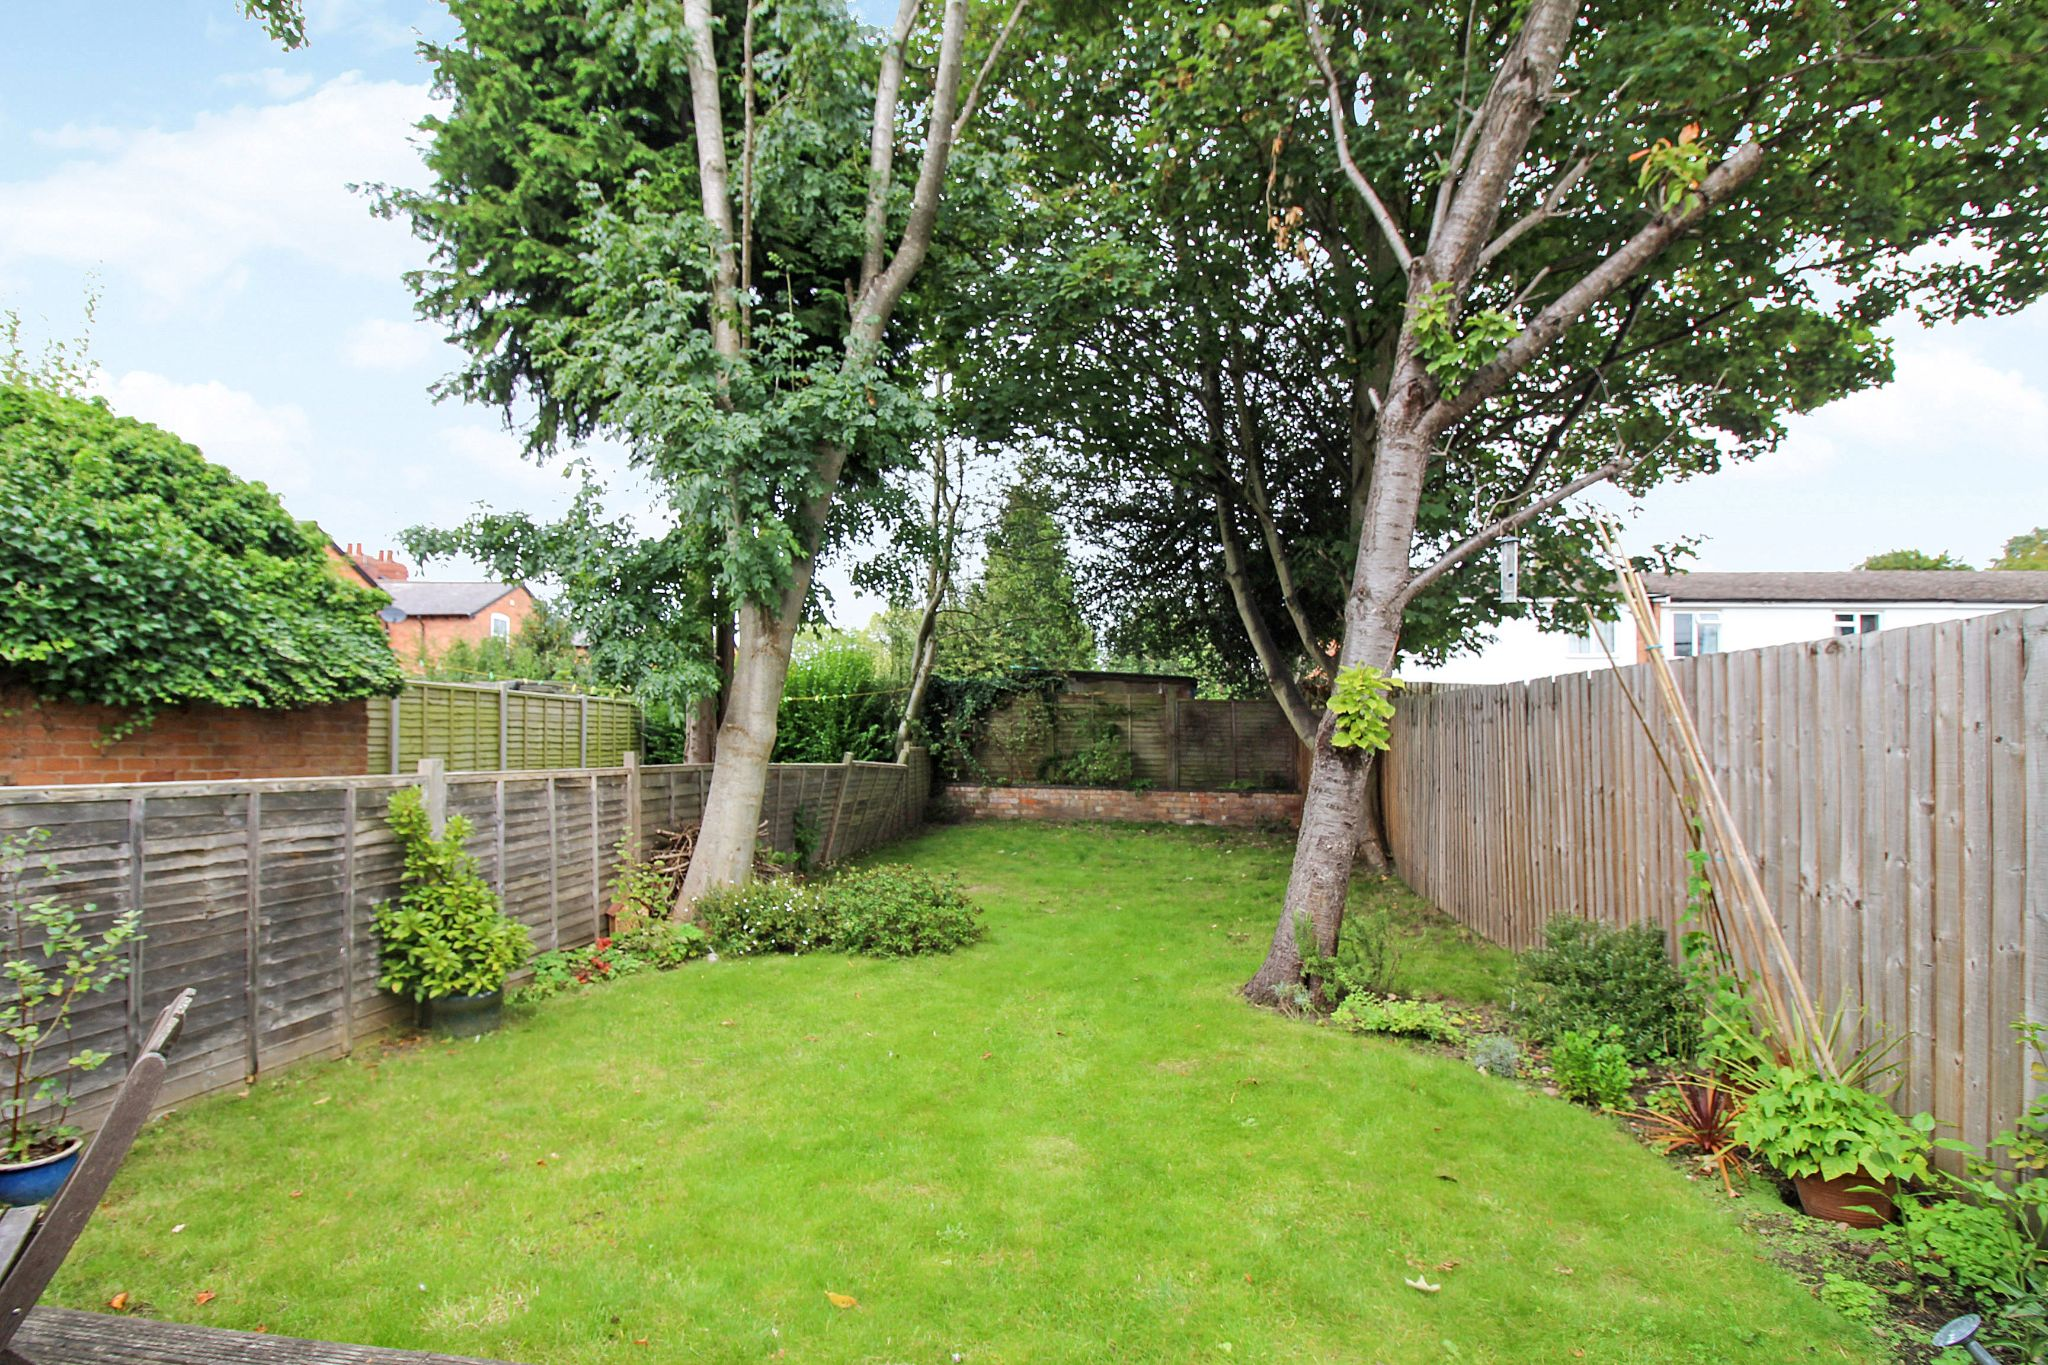 2 bedroom end terraced house For Sale in Solihull - Photograph 6.